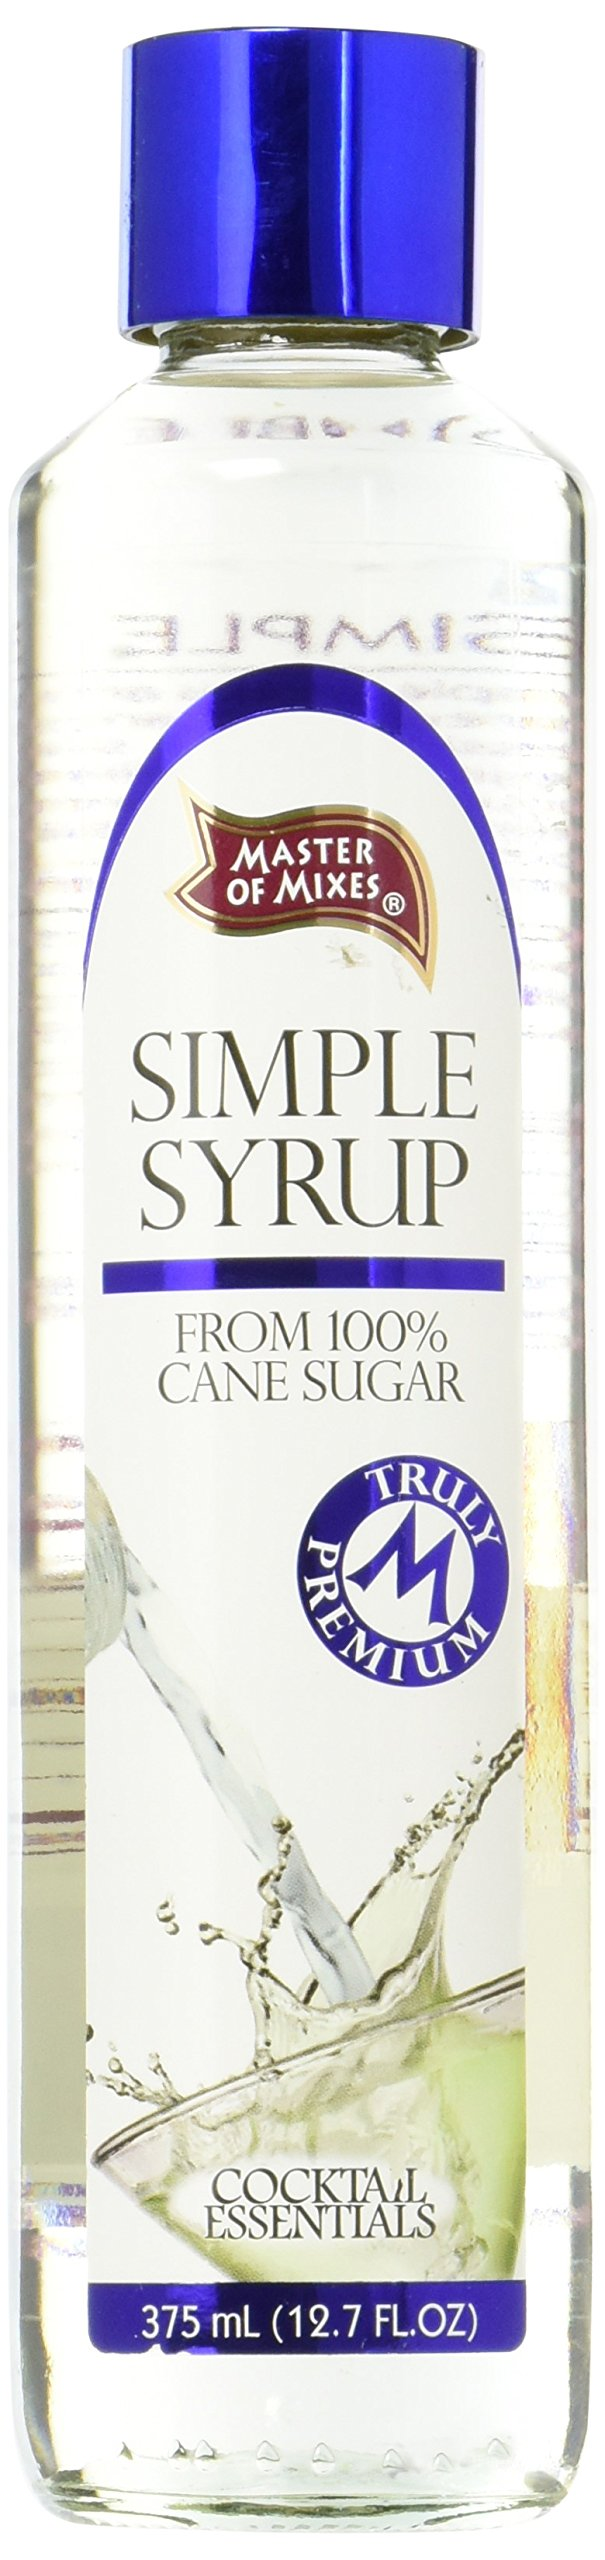 Master of Mixes-Cocktail Simple Syrup 375.0 ML(Pack of 1)